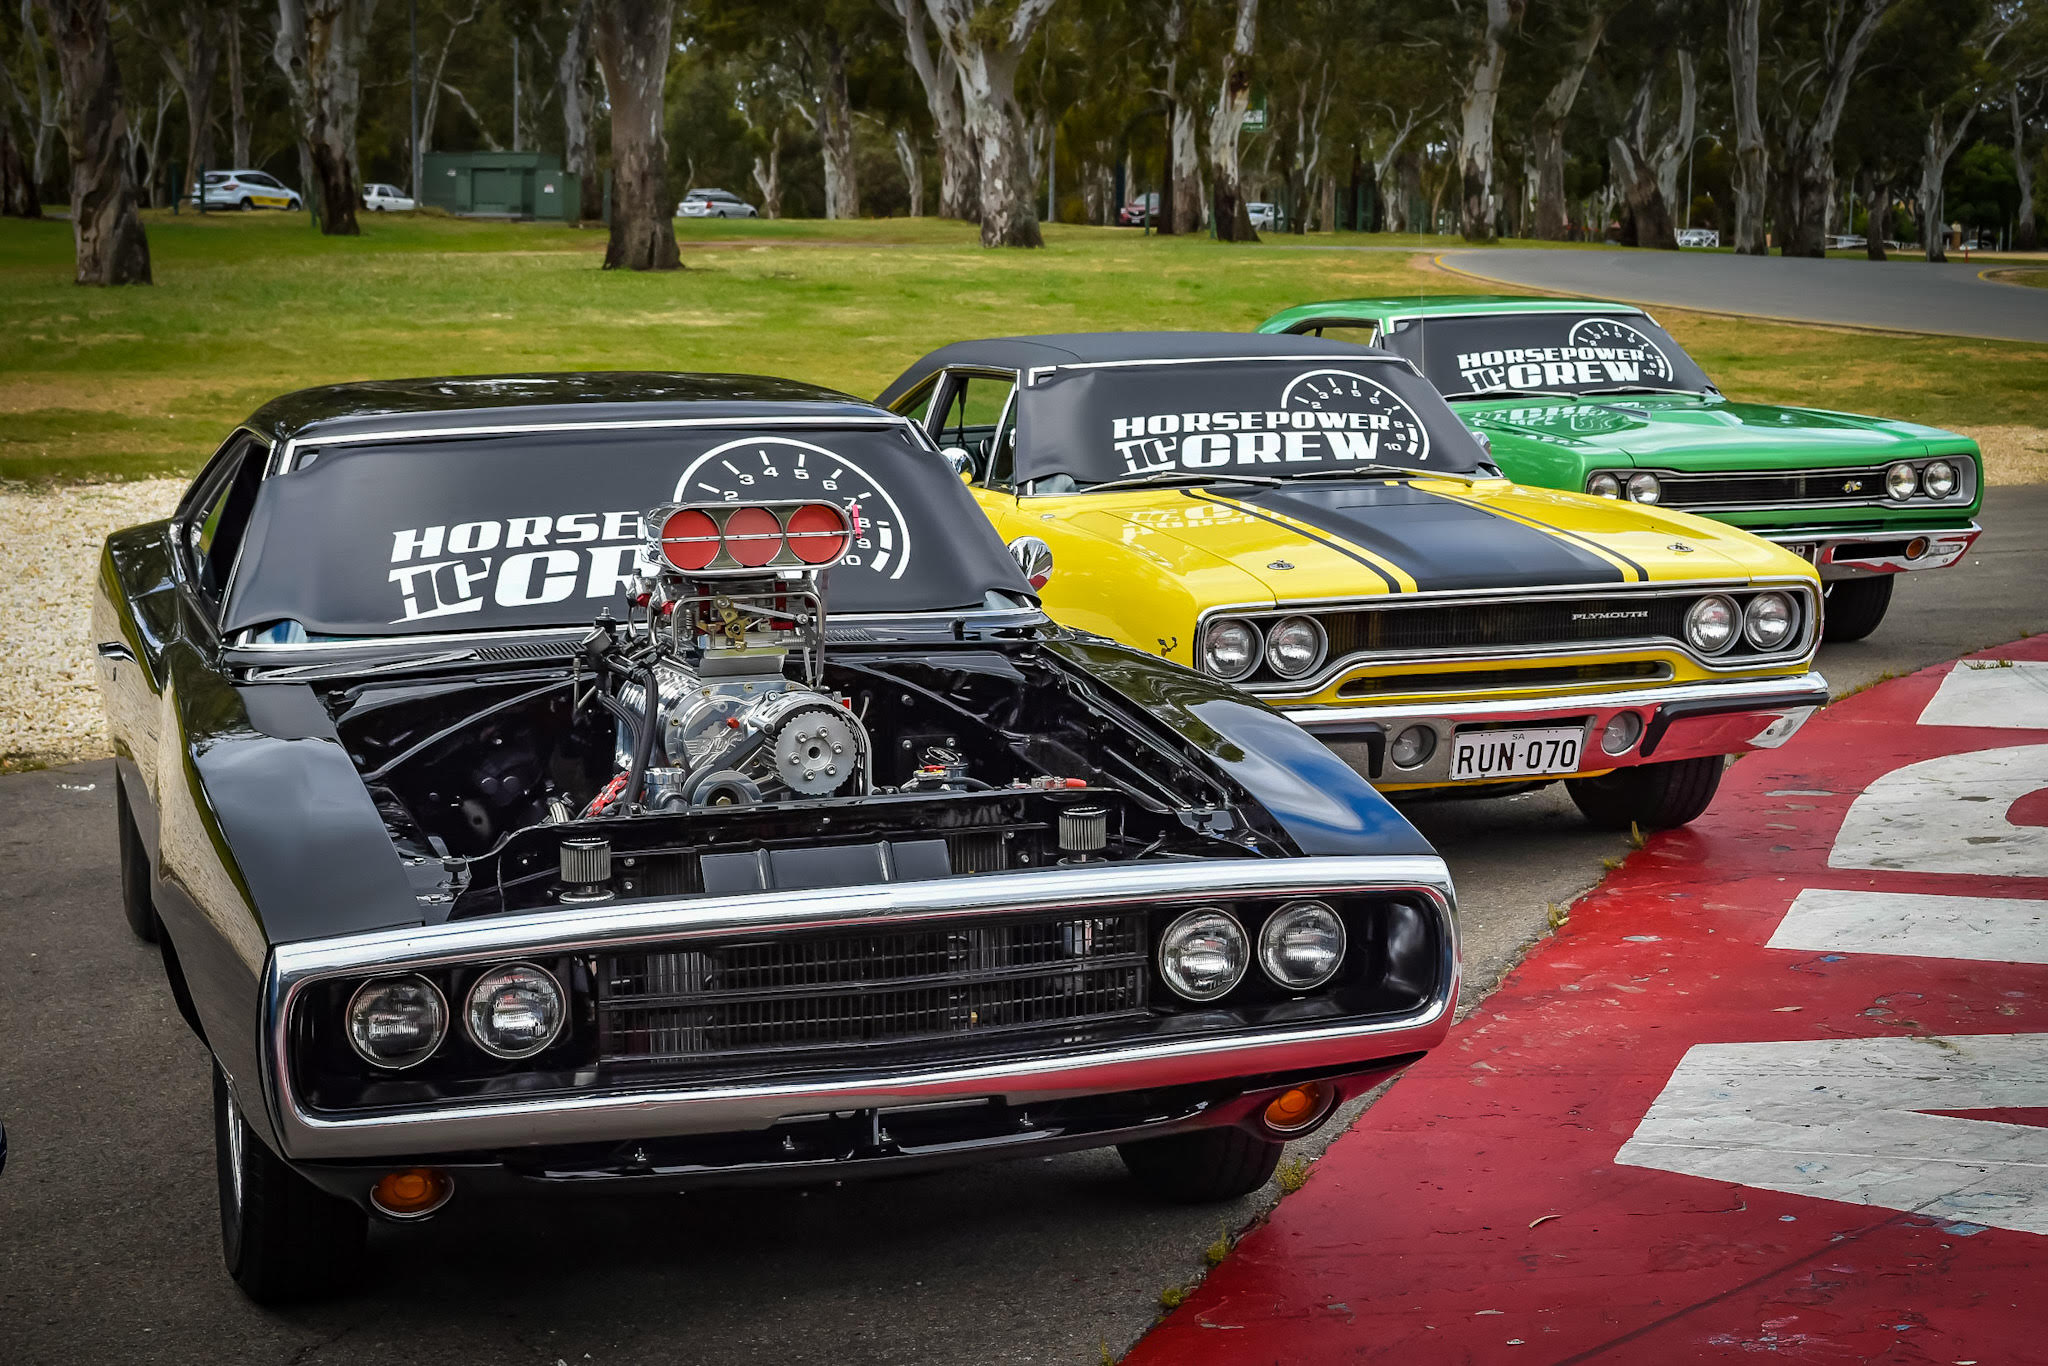 windscreen-cover-rev-gauge-classic-size-black-and-white-Charger-superbee-roadrunner-Copy